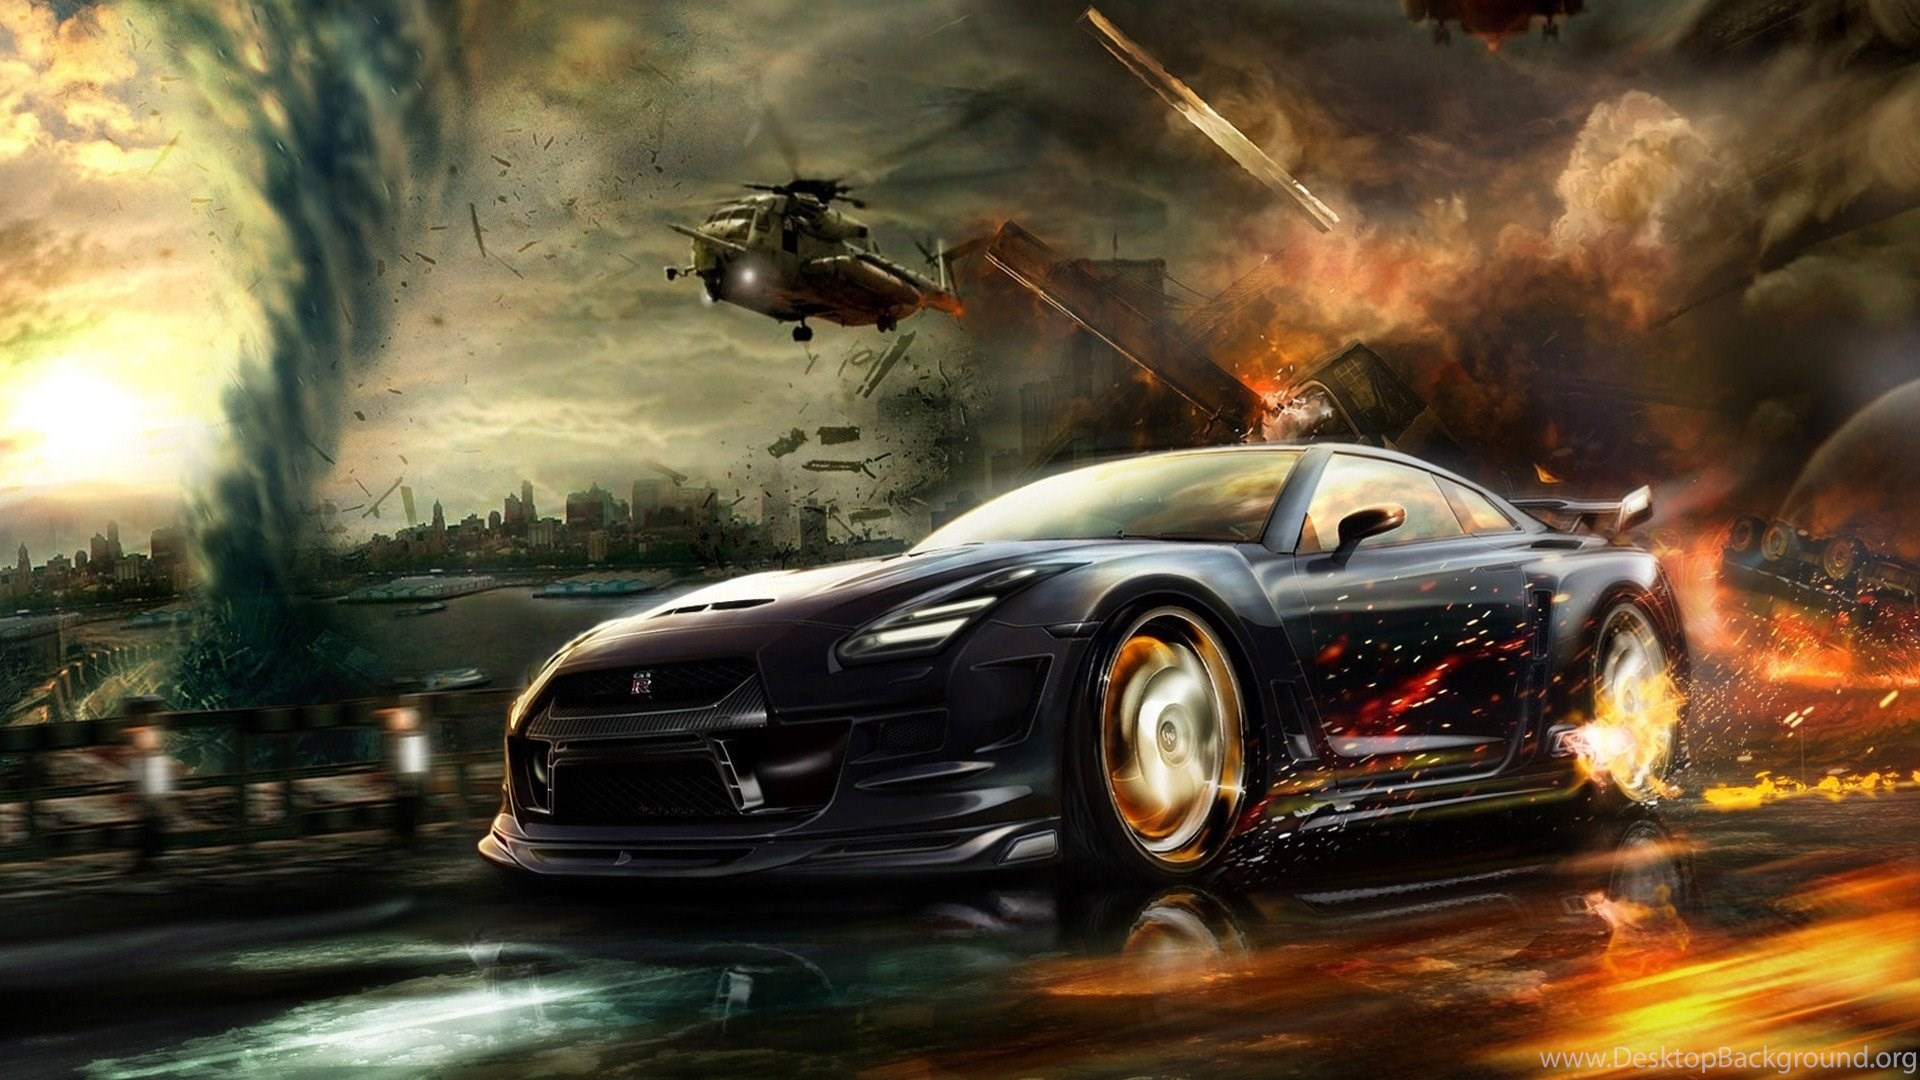 Latest car wallpapers hd background images latestcarwallpapers popular voltagebd Choice Image